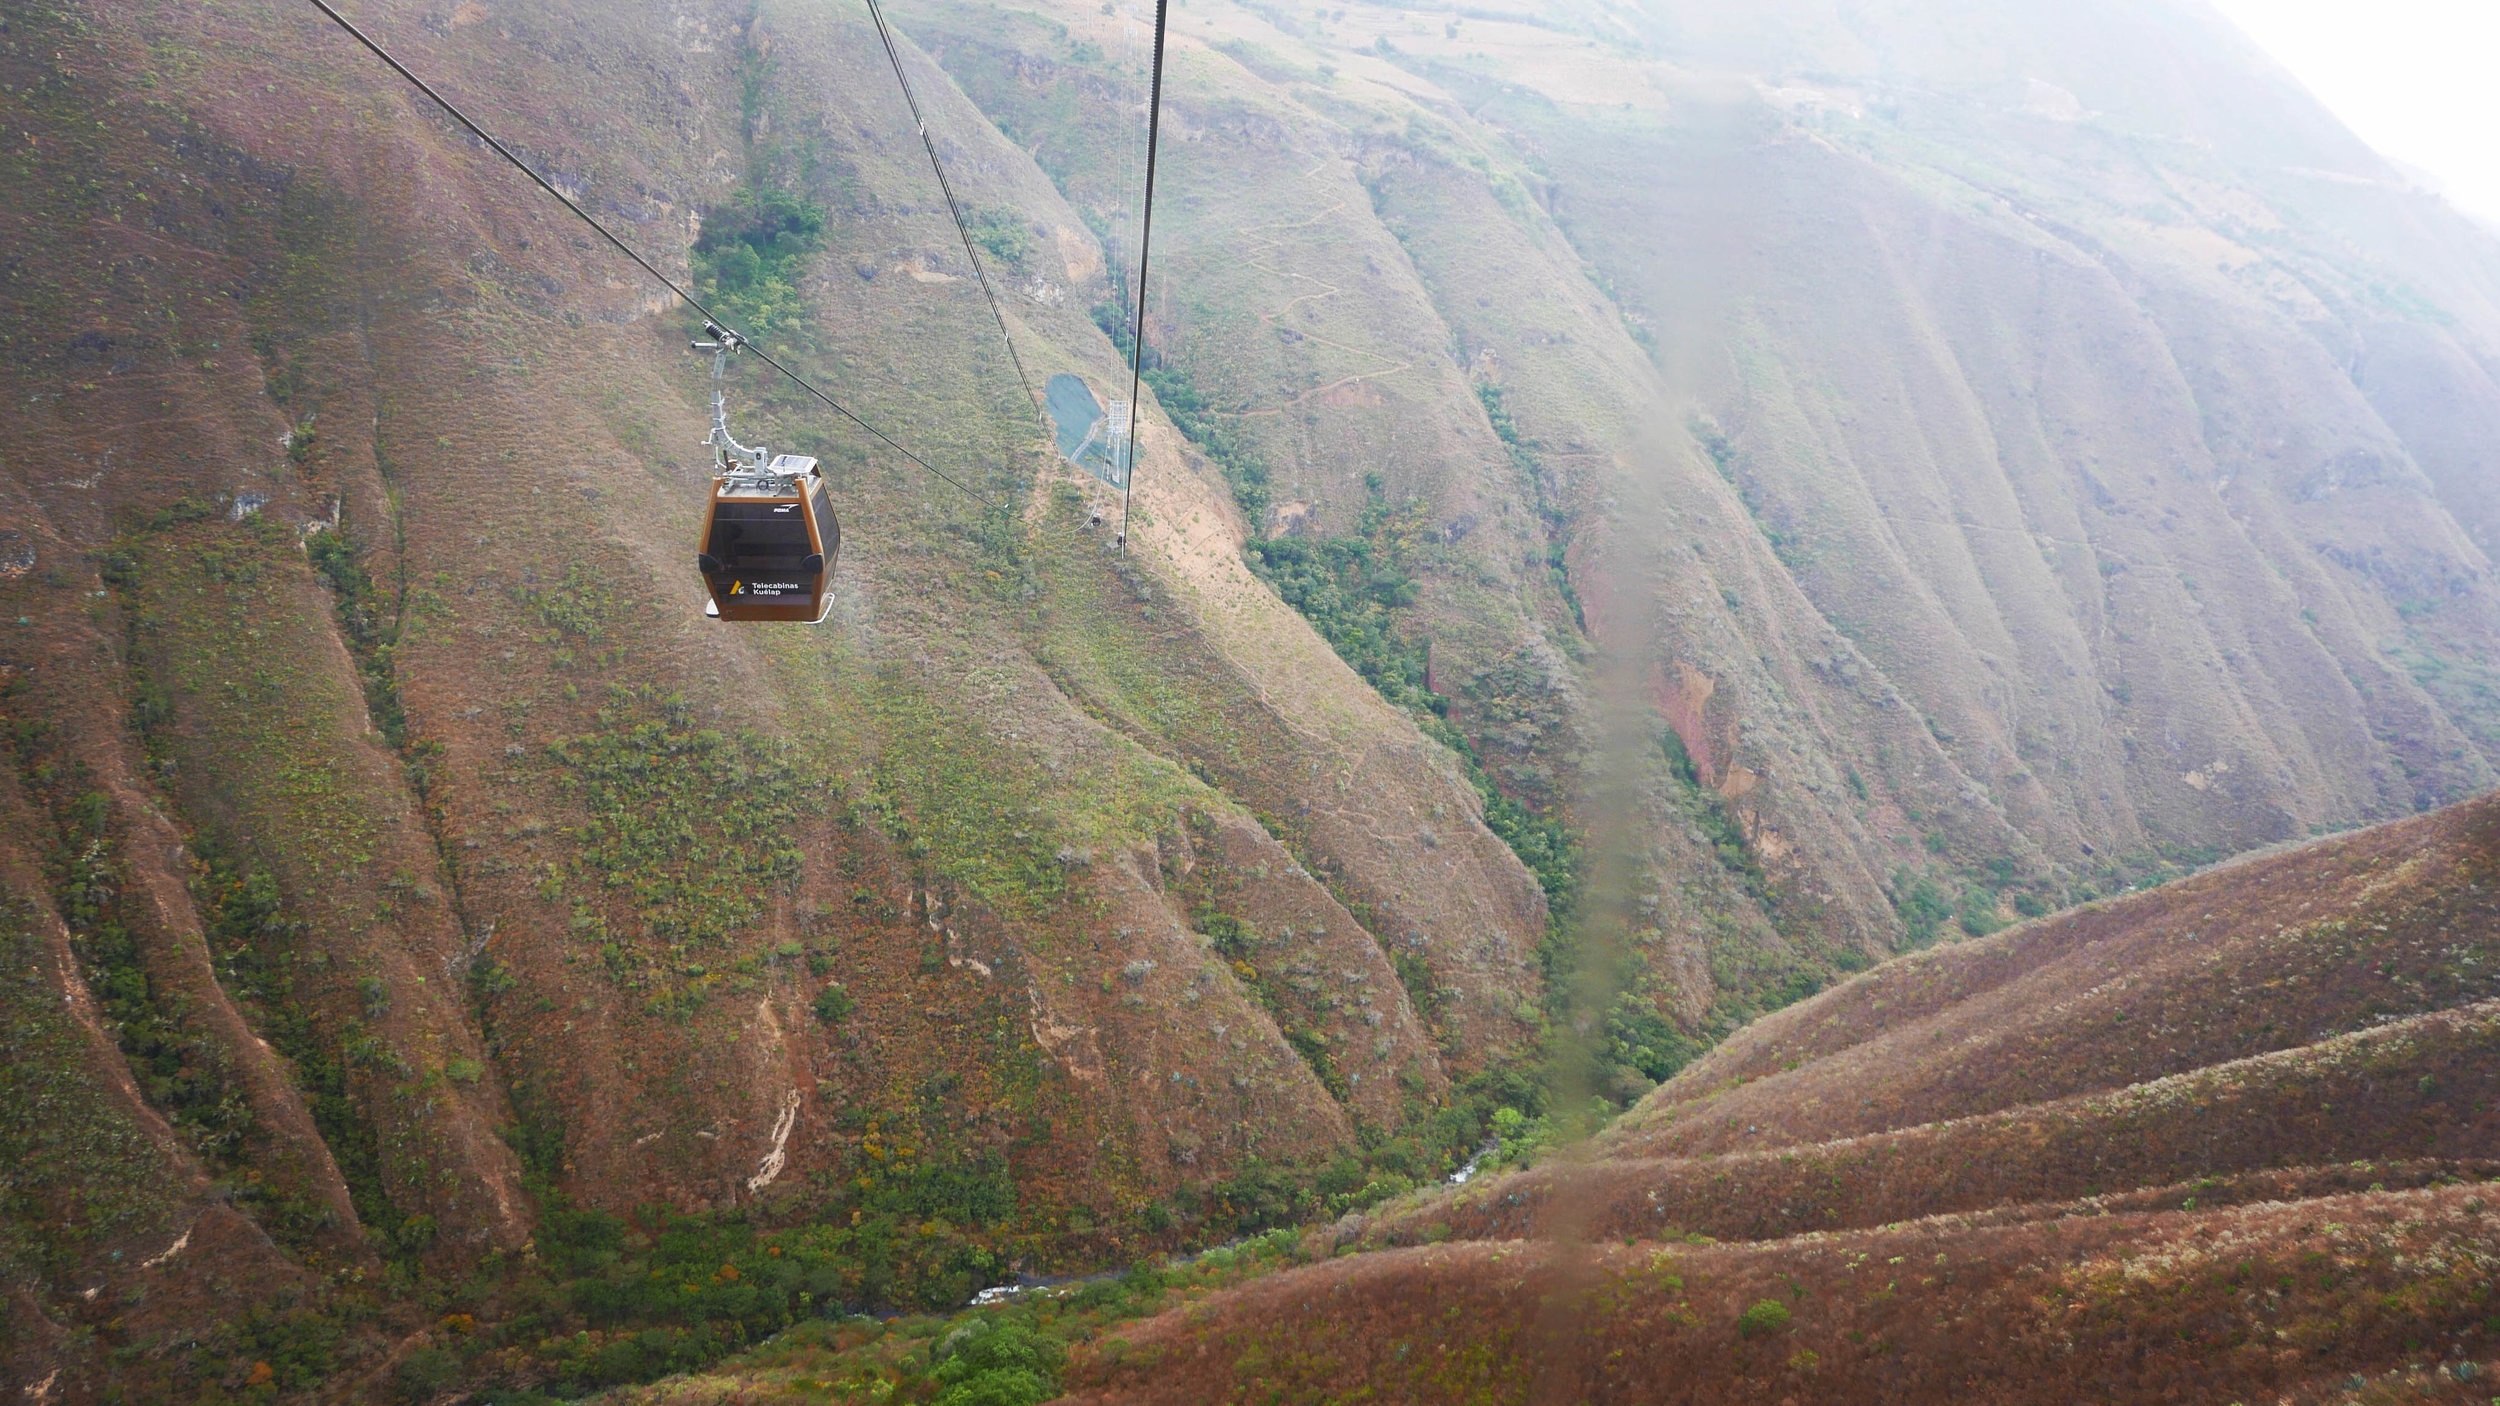 Building Infrastructure is key to managing fragile sites. This new cable car is part of a sustainable plan to open up tourism in Chachapoyas, a region in northern Peru.